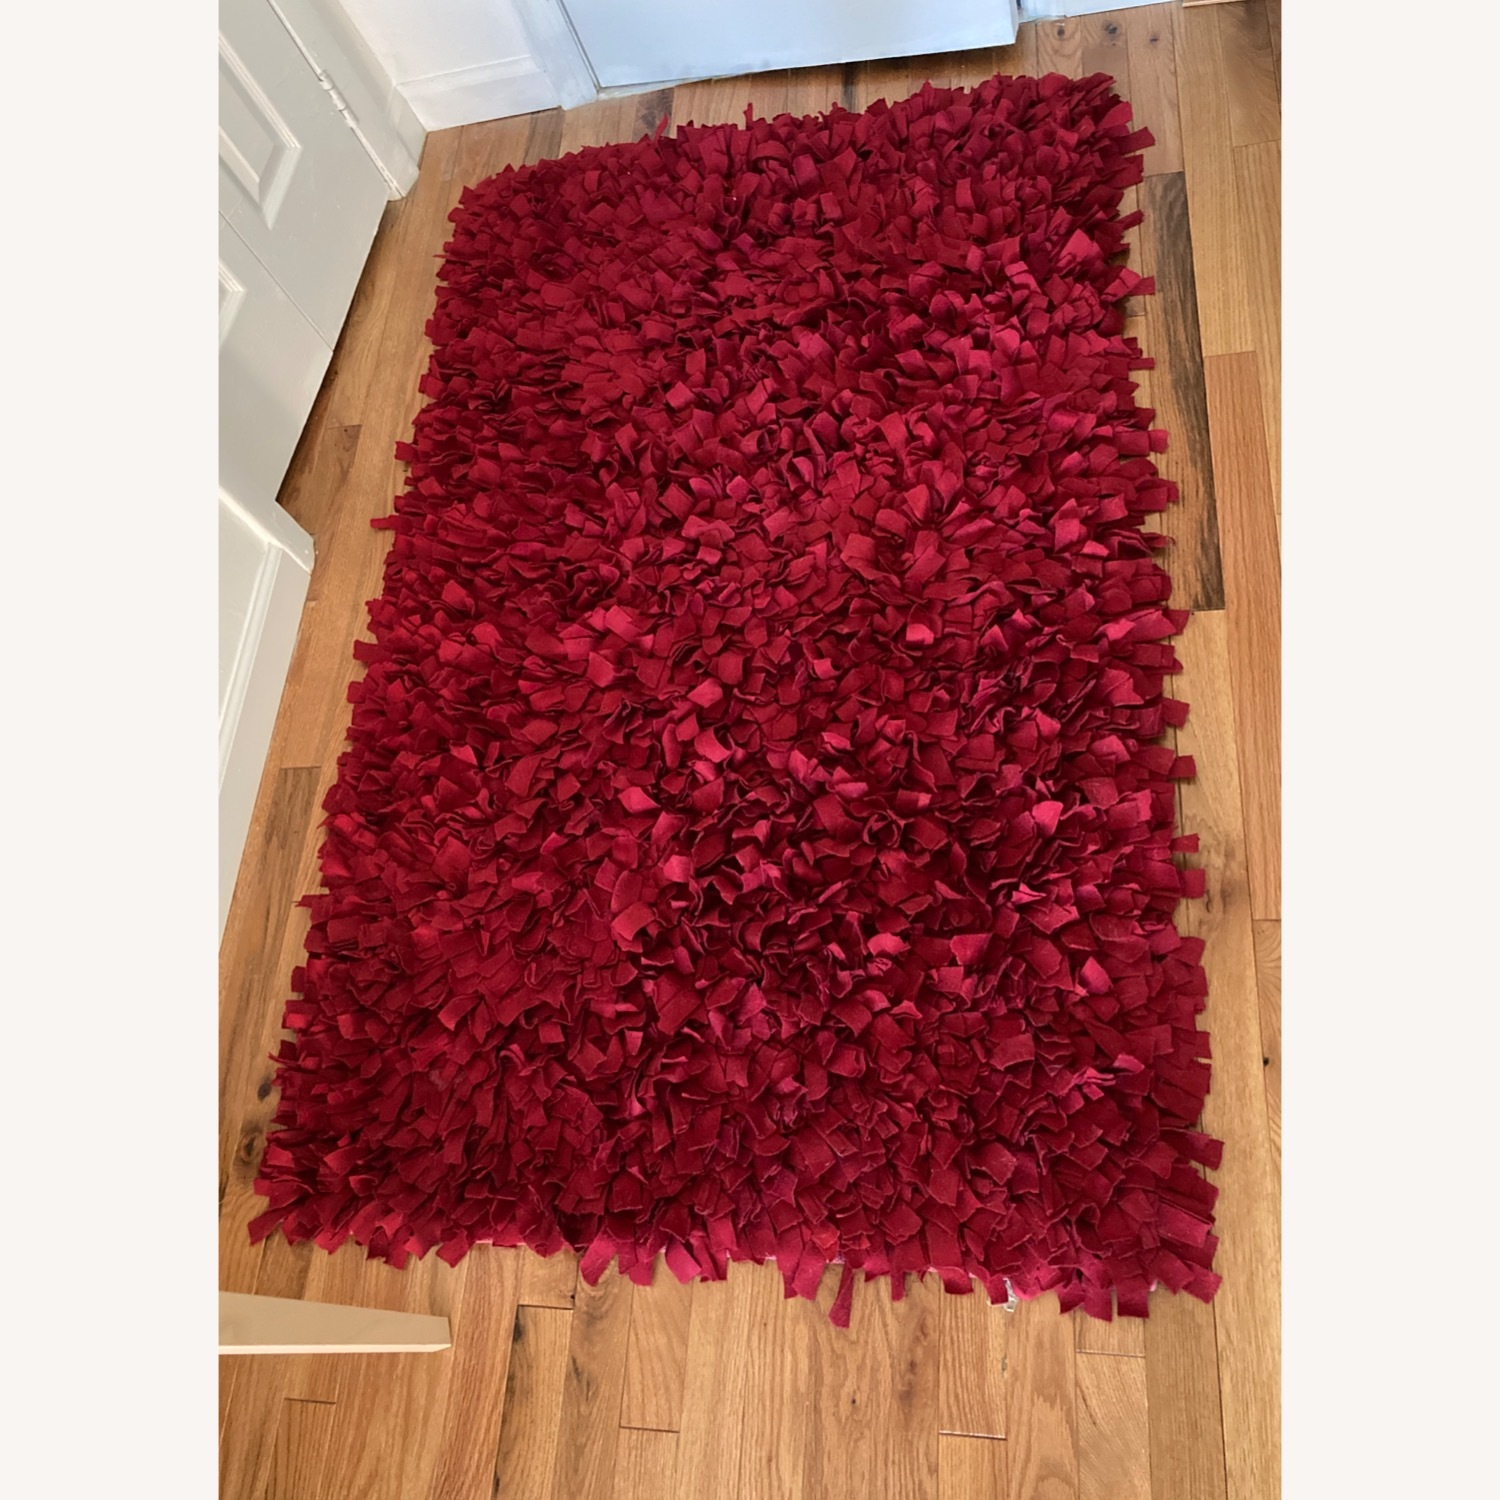 ABC Carpet & Home Red Wool Felted Rug - image-1